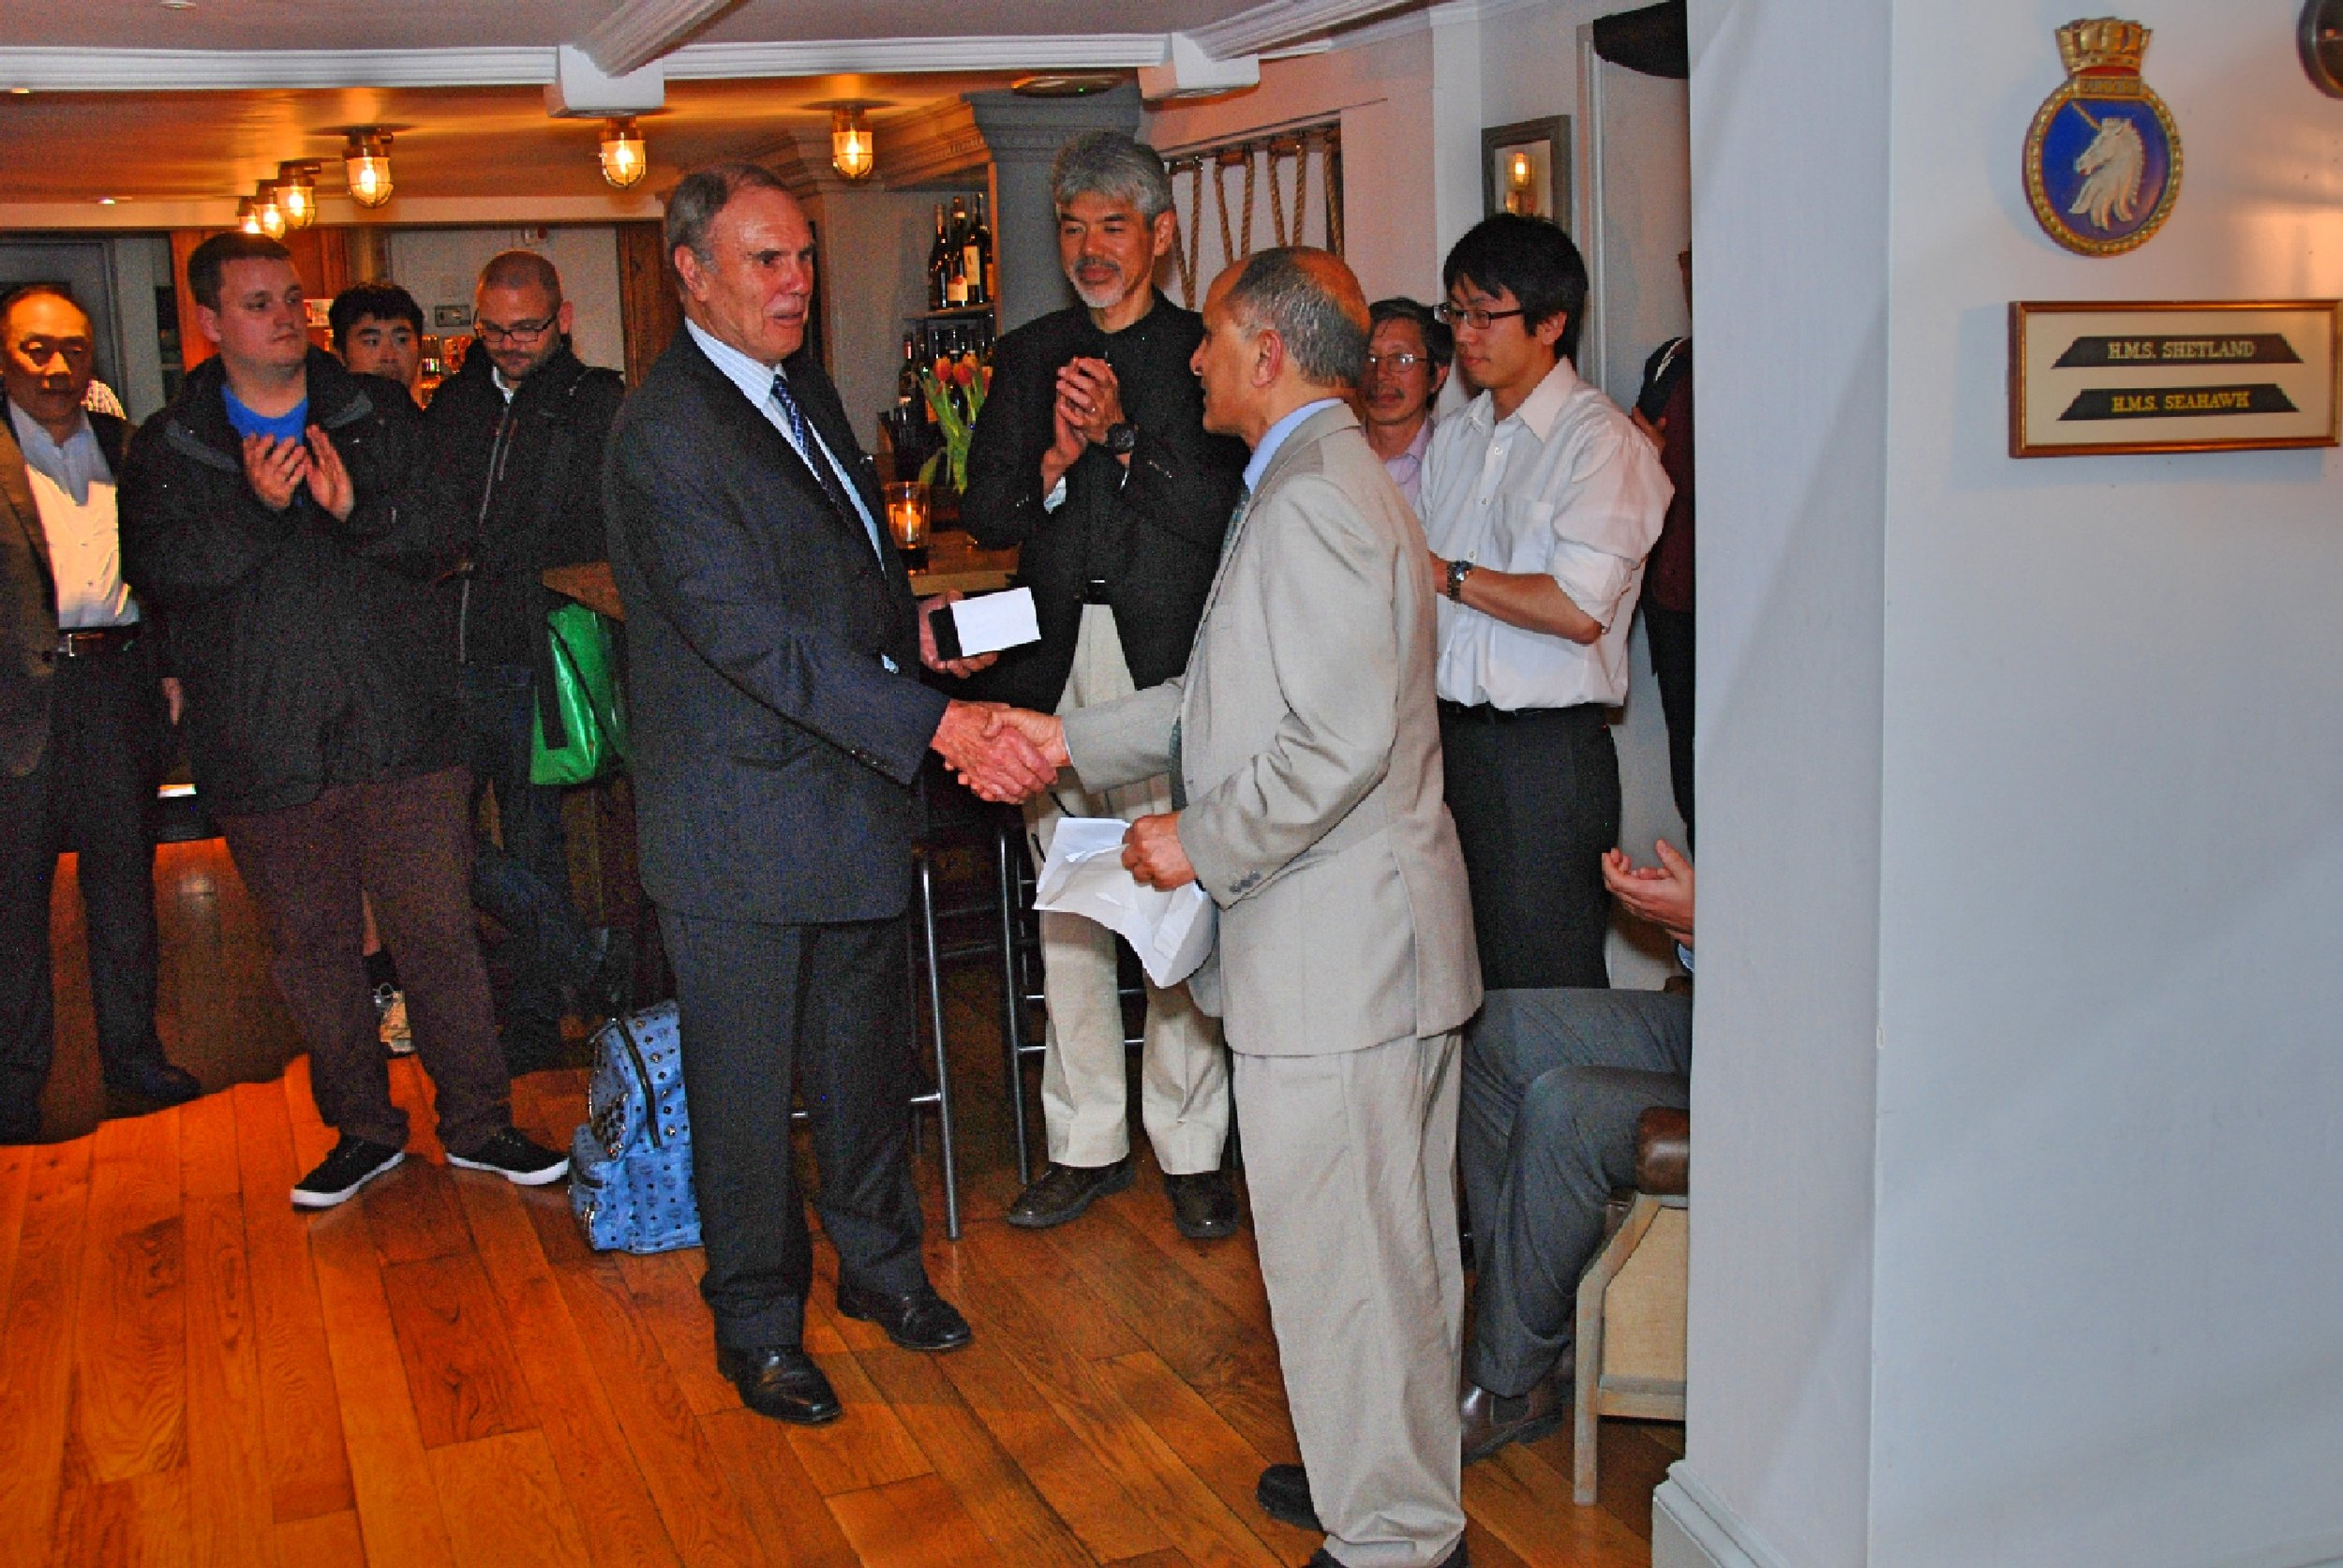 Award being presented to Mr. Bill Moore, ETD Consultant, UK